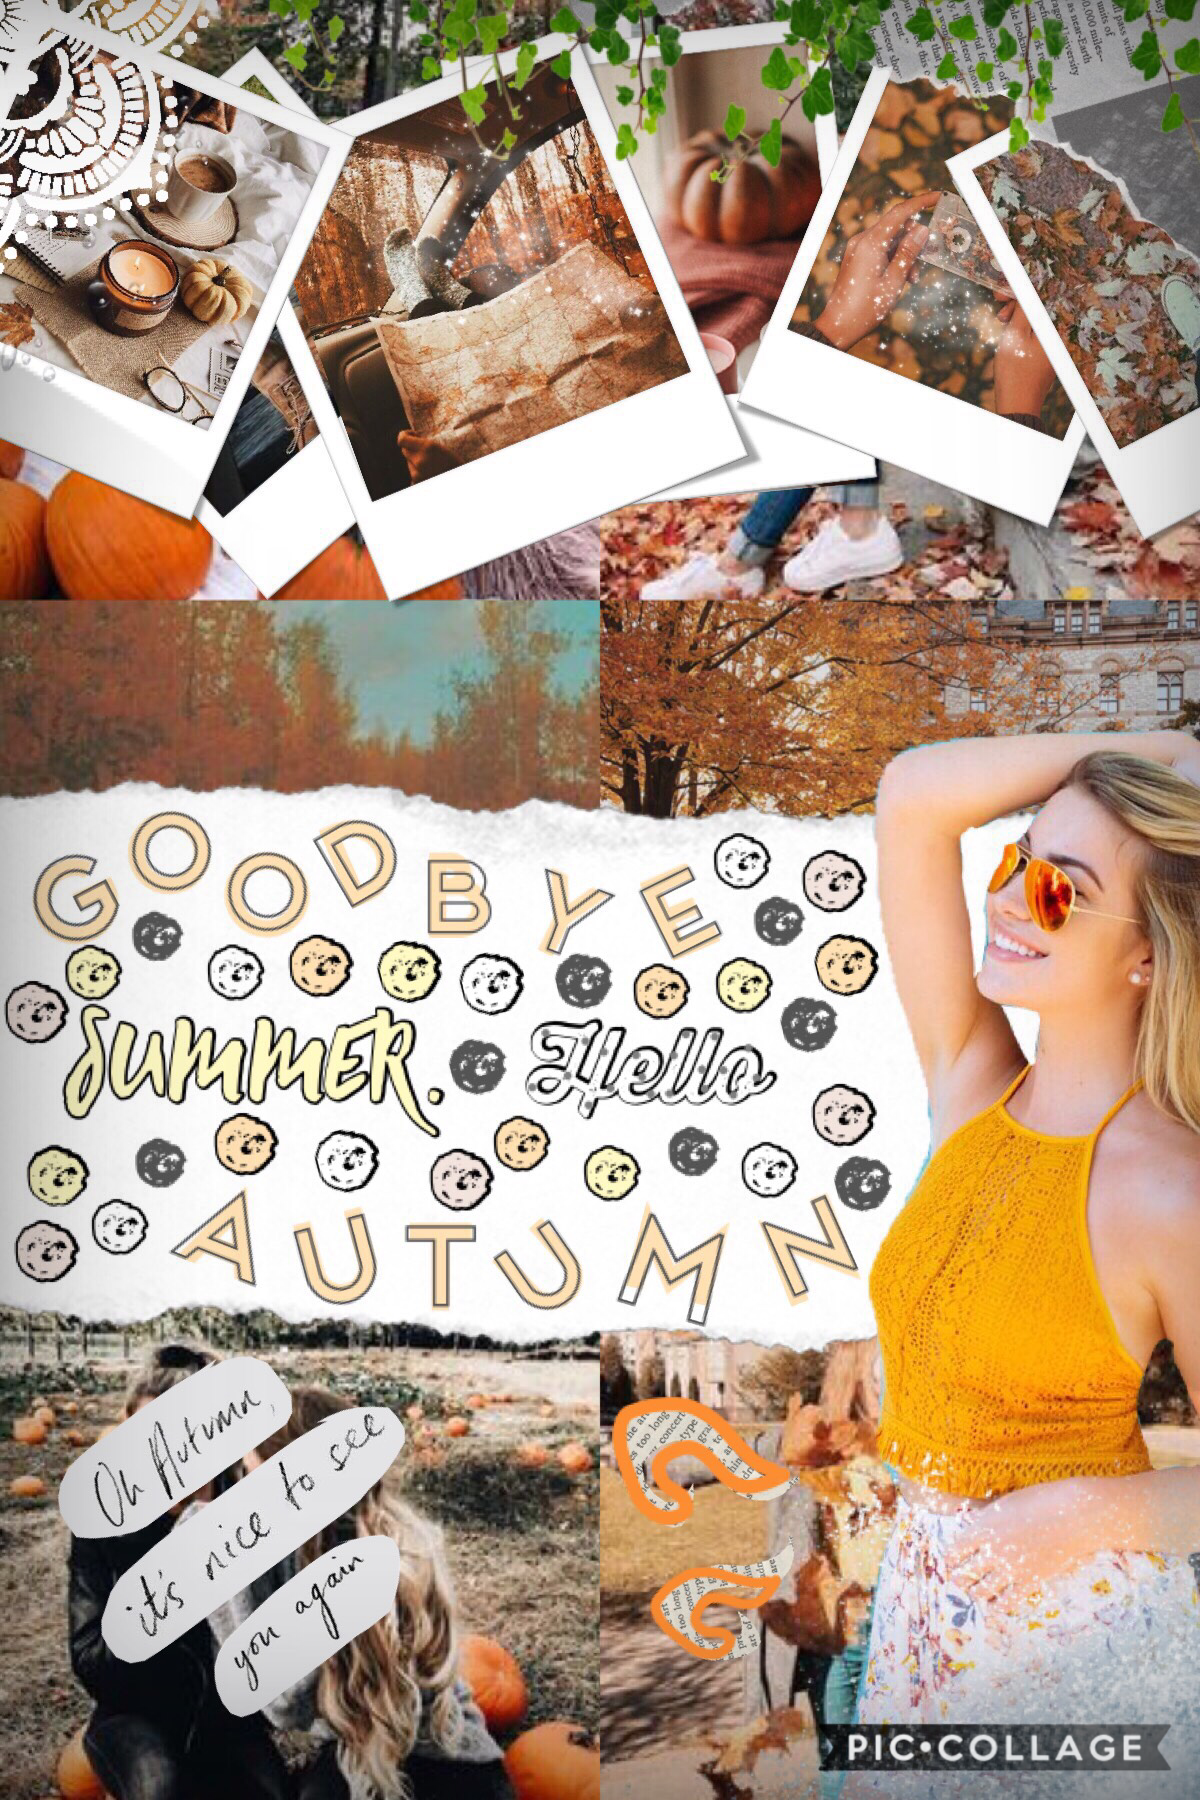 Hey! First Autumn themed collage 🍂 How's life 🌿🌸 I HAVE SO MUCH HOMEWORK 😭